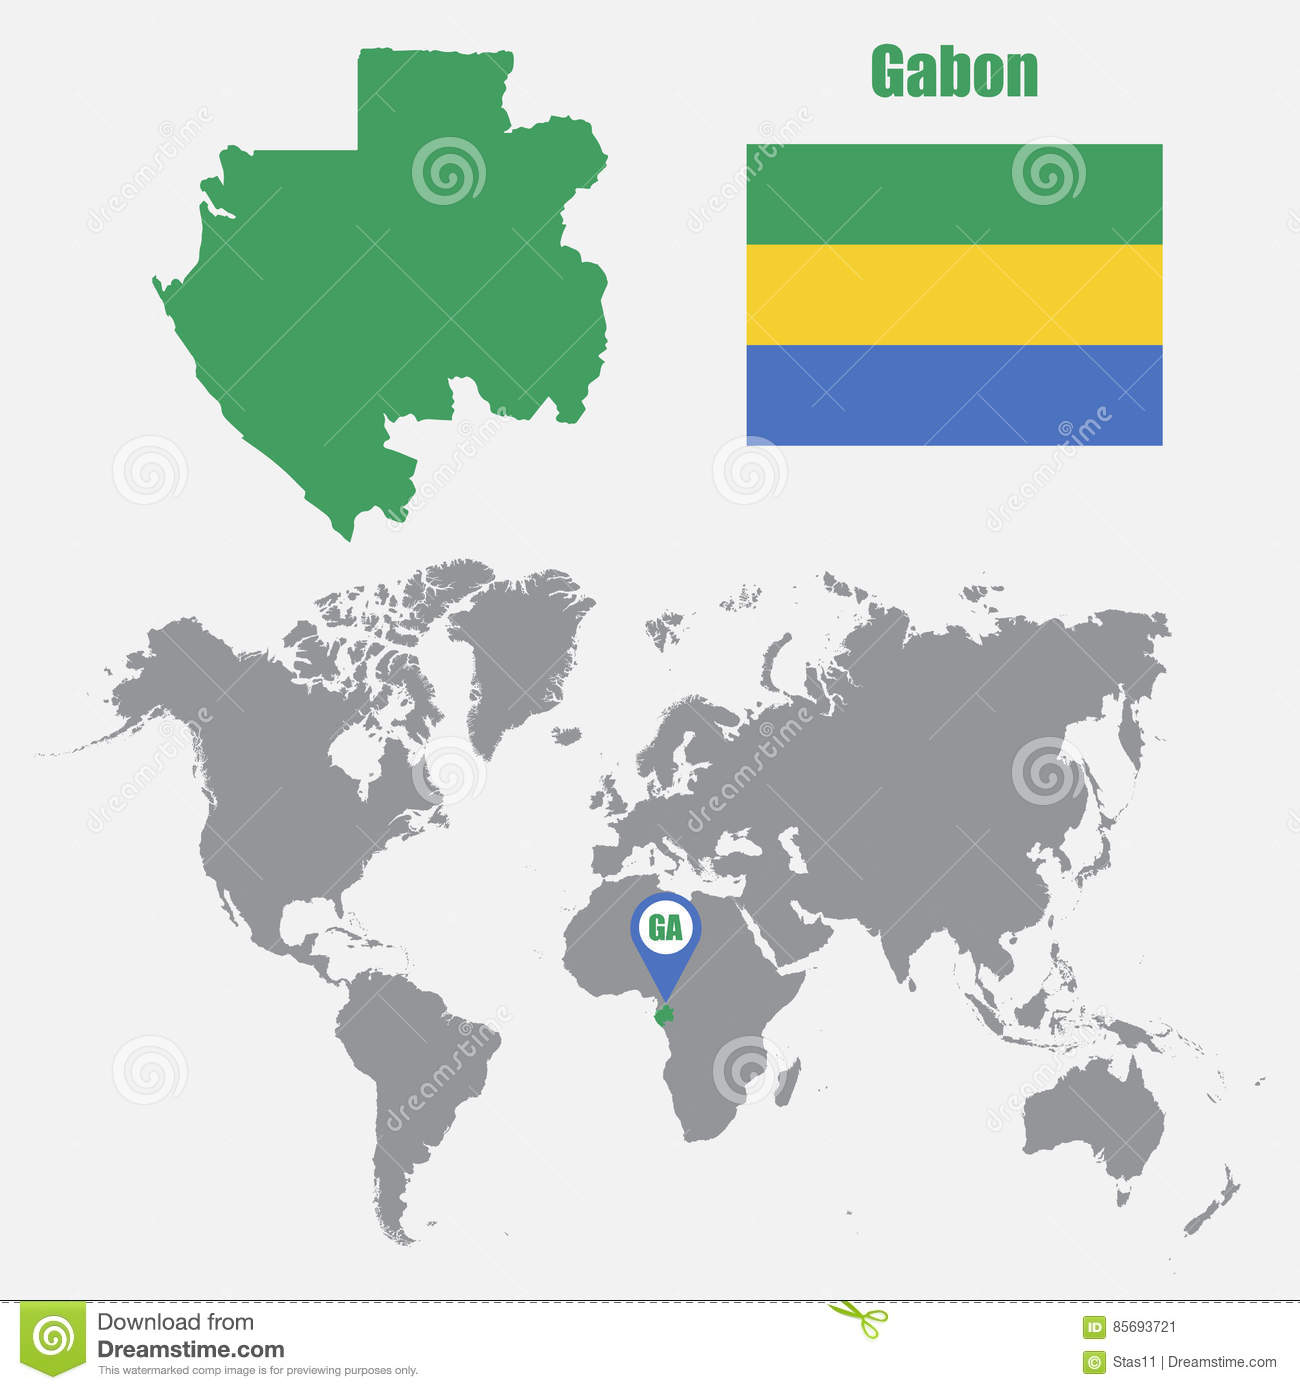 Gabon World Map.Gabon Map On A World Map With Flag And Map Pointer Vector